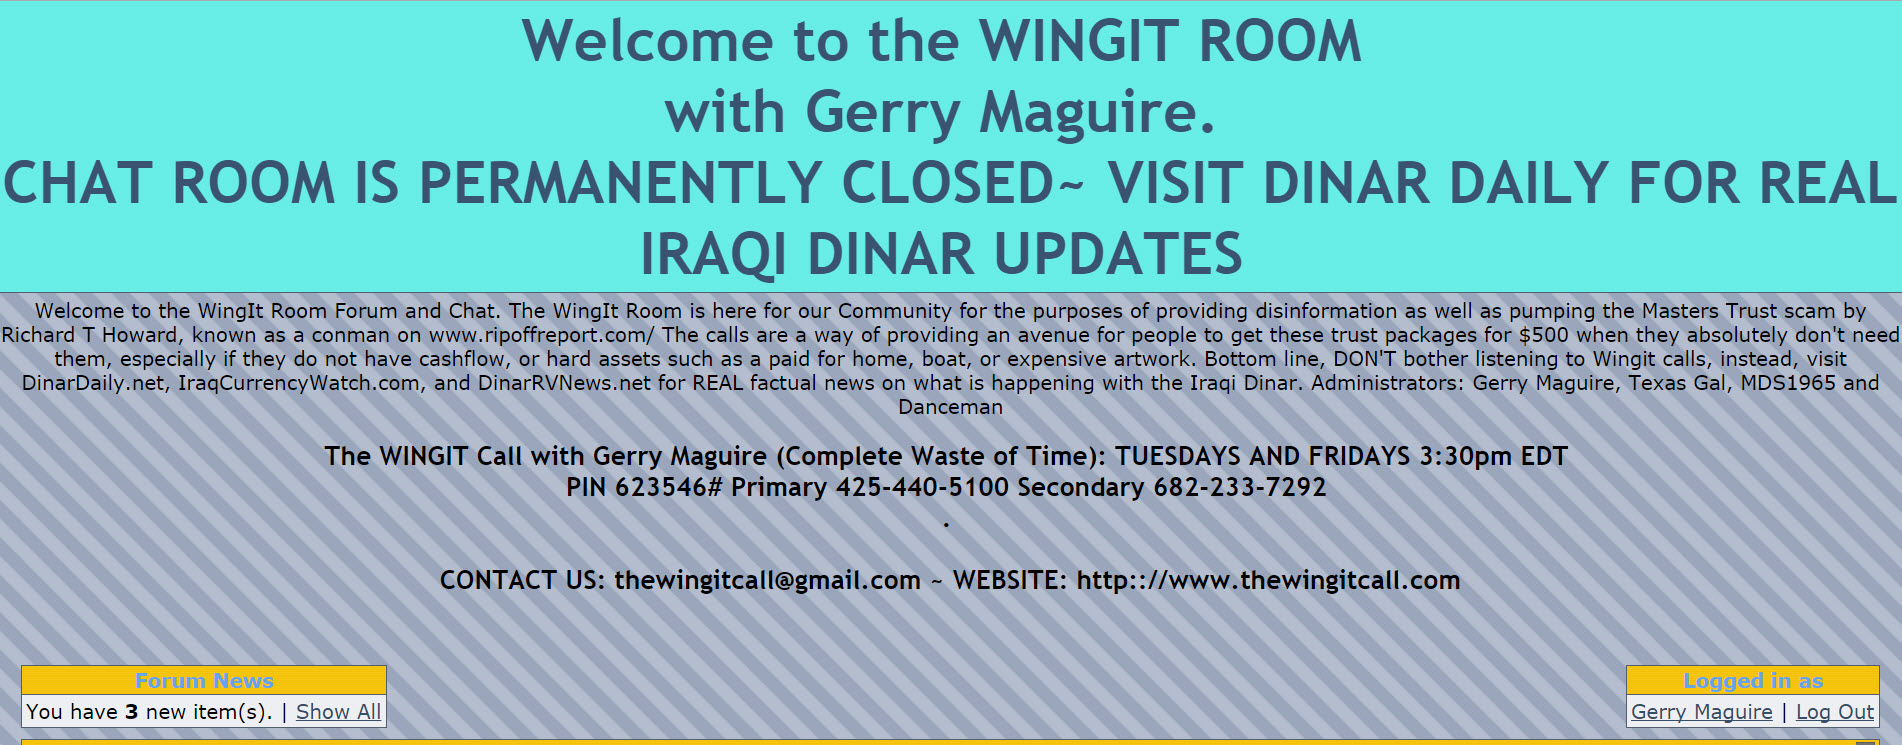 Wingit Call Hacked? Logged-in-activeboard-wingit-call